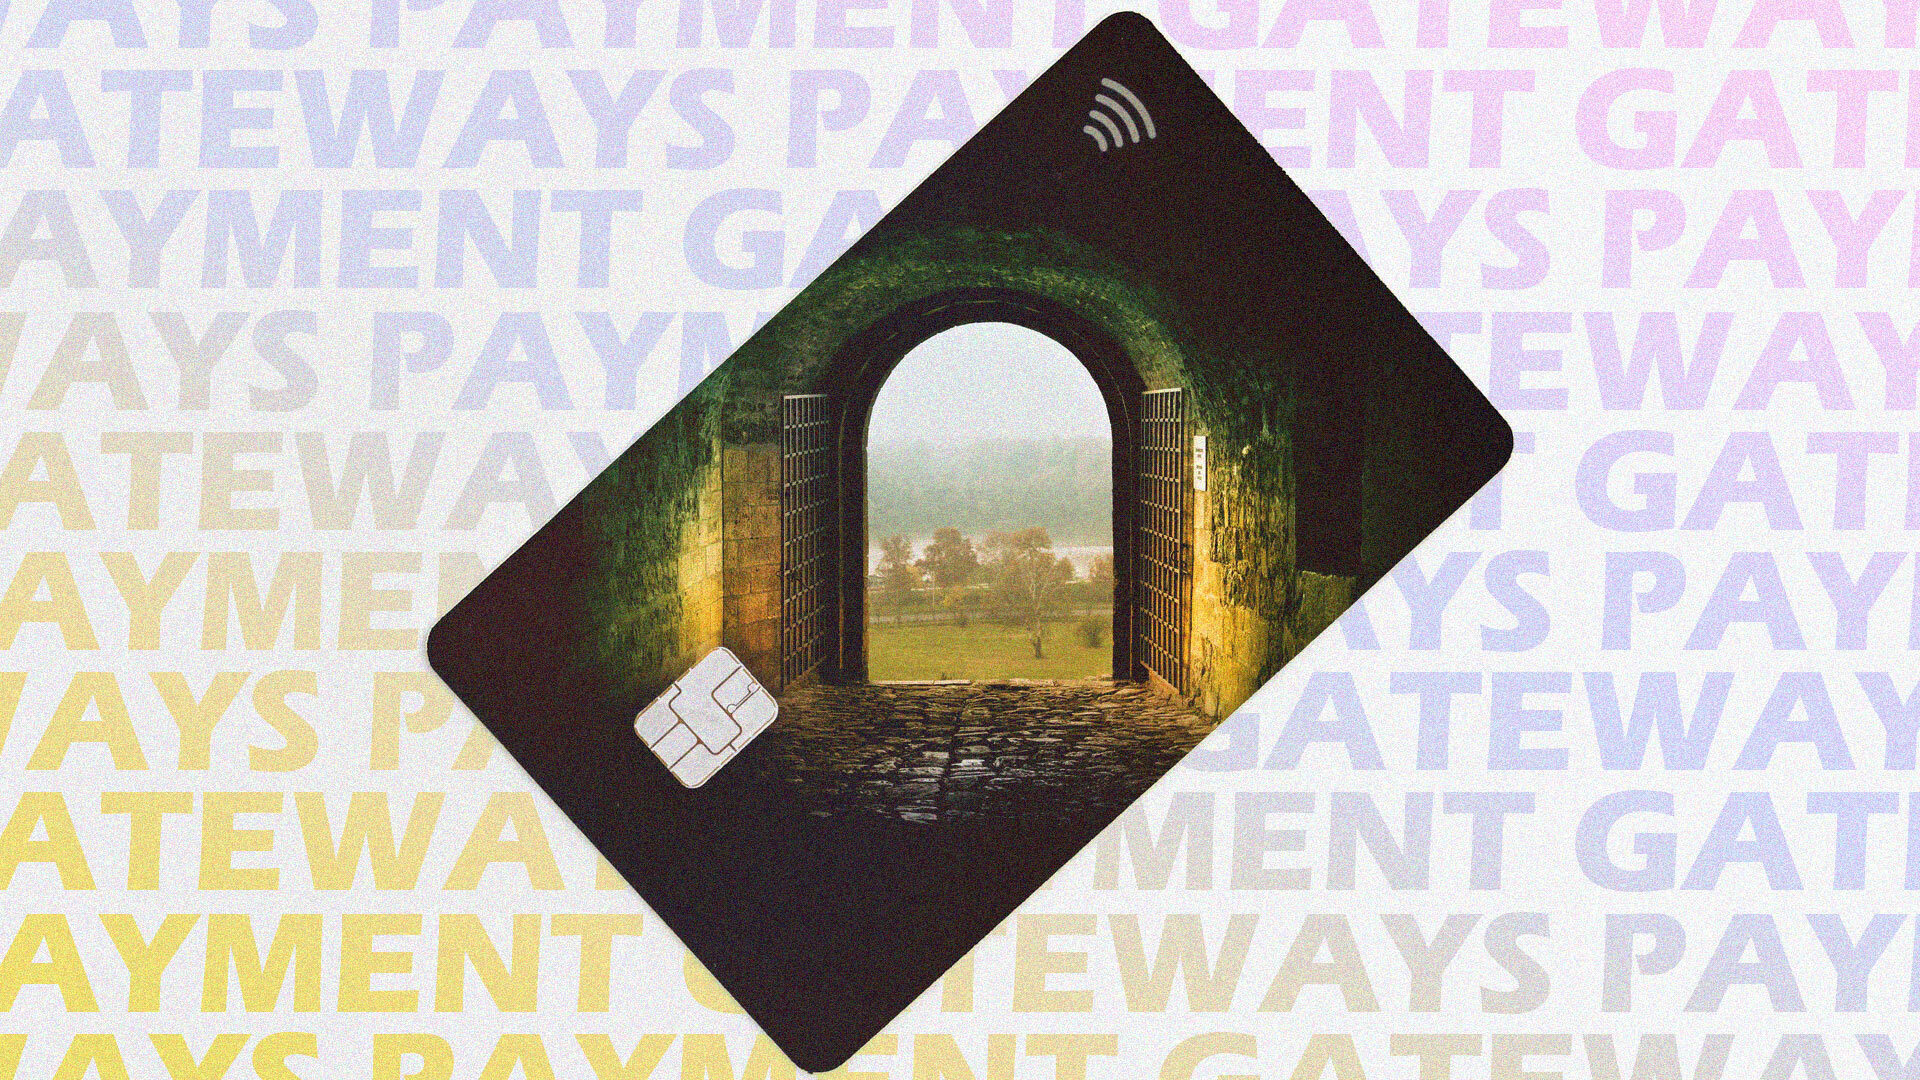 How to Integrate Payment Gateways Into the Web App? All About Payment Systems